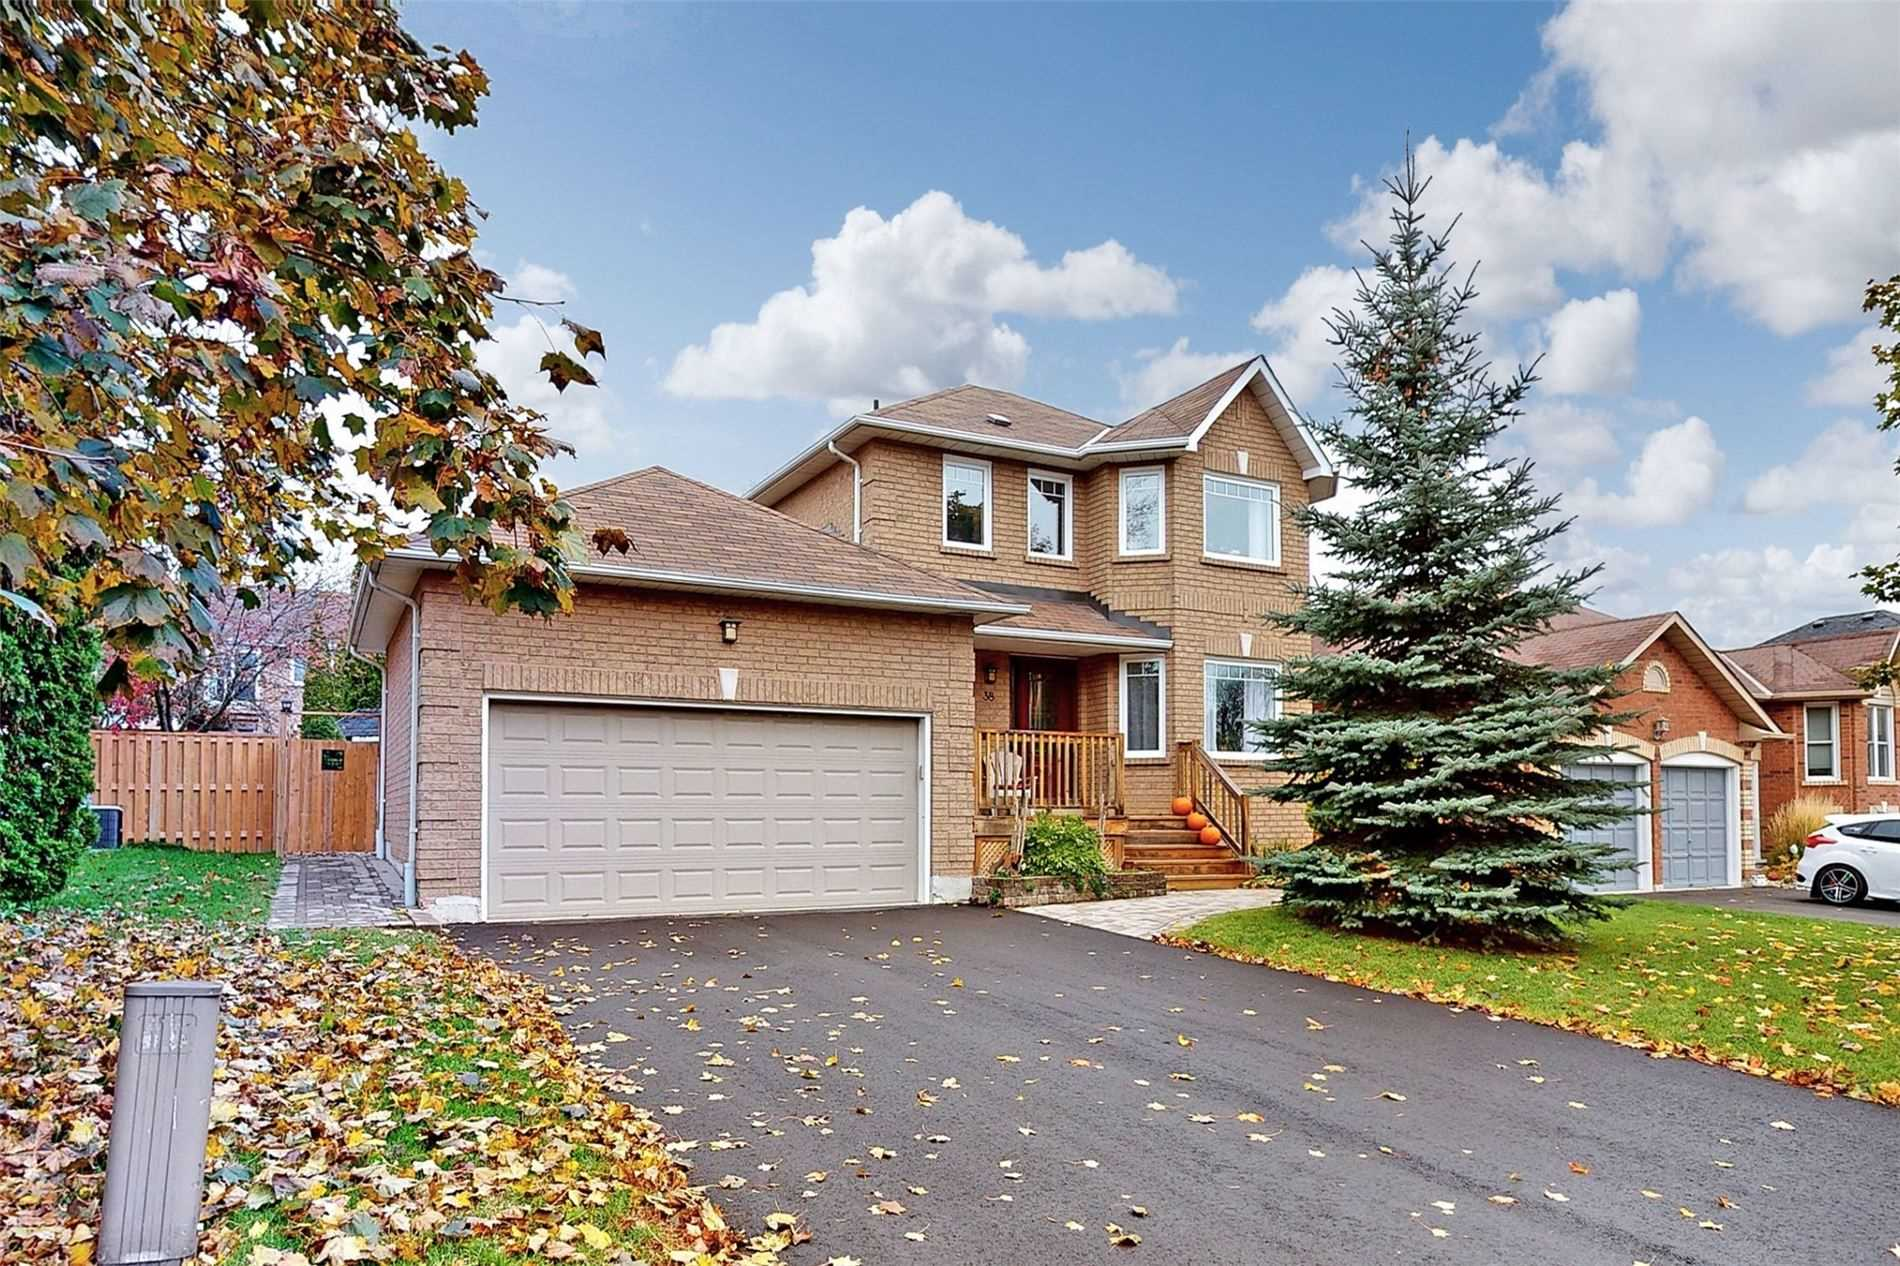 For Sale: 38 Turner Drive, Uxbridge, ON | 2 Bed, 2 Bath House for $719900.00. See 28 photos!